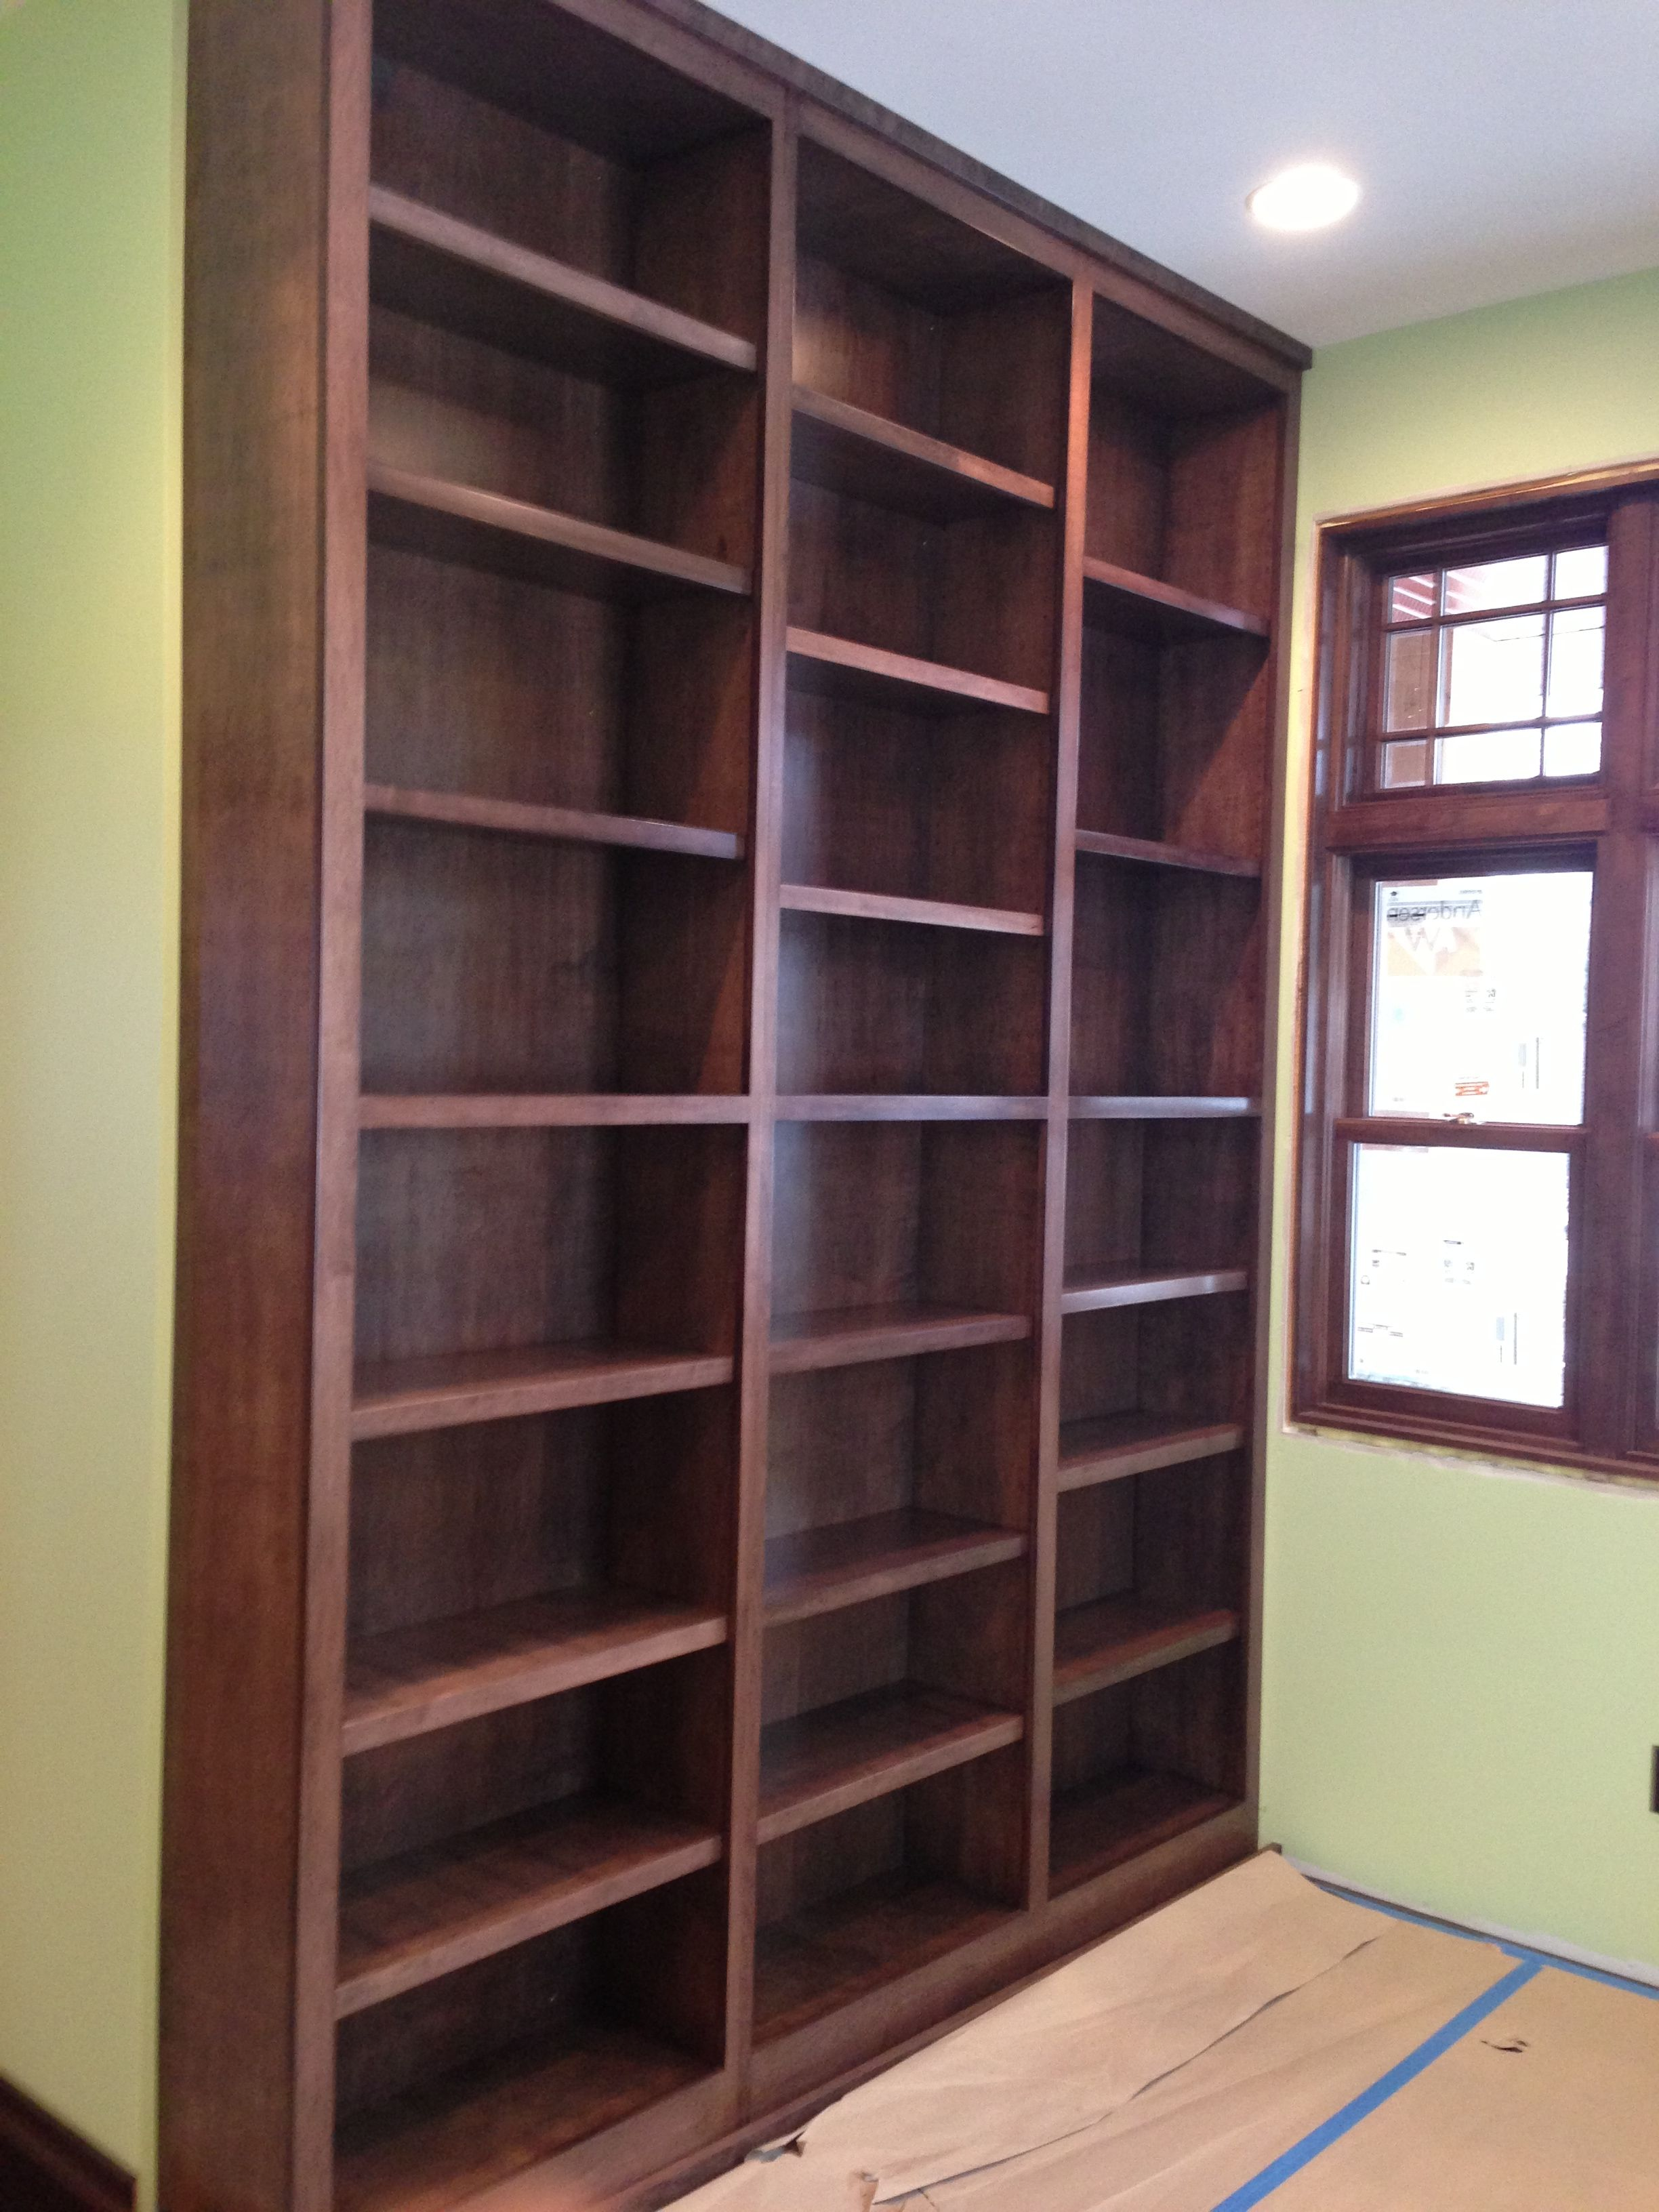 Delightful Built In Shelving W/ Lifespan Closets Systems